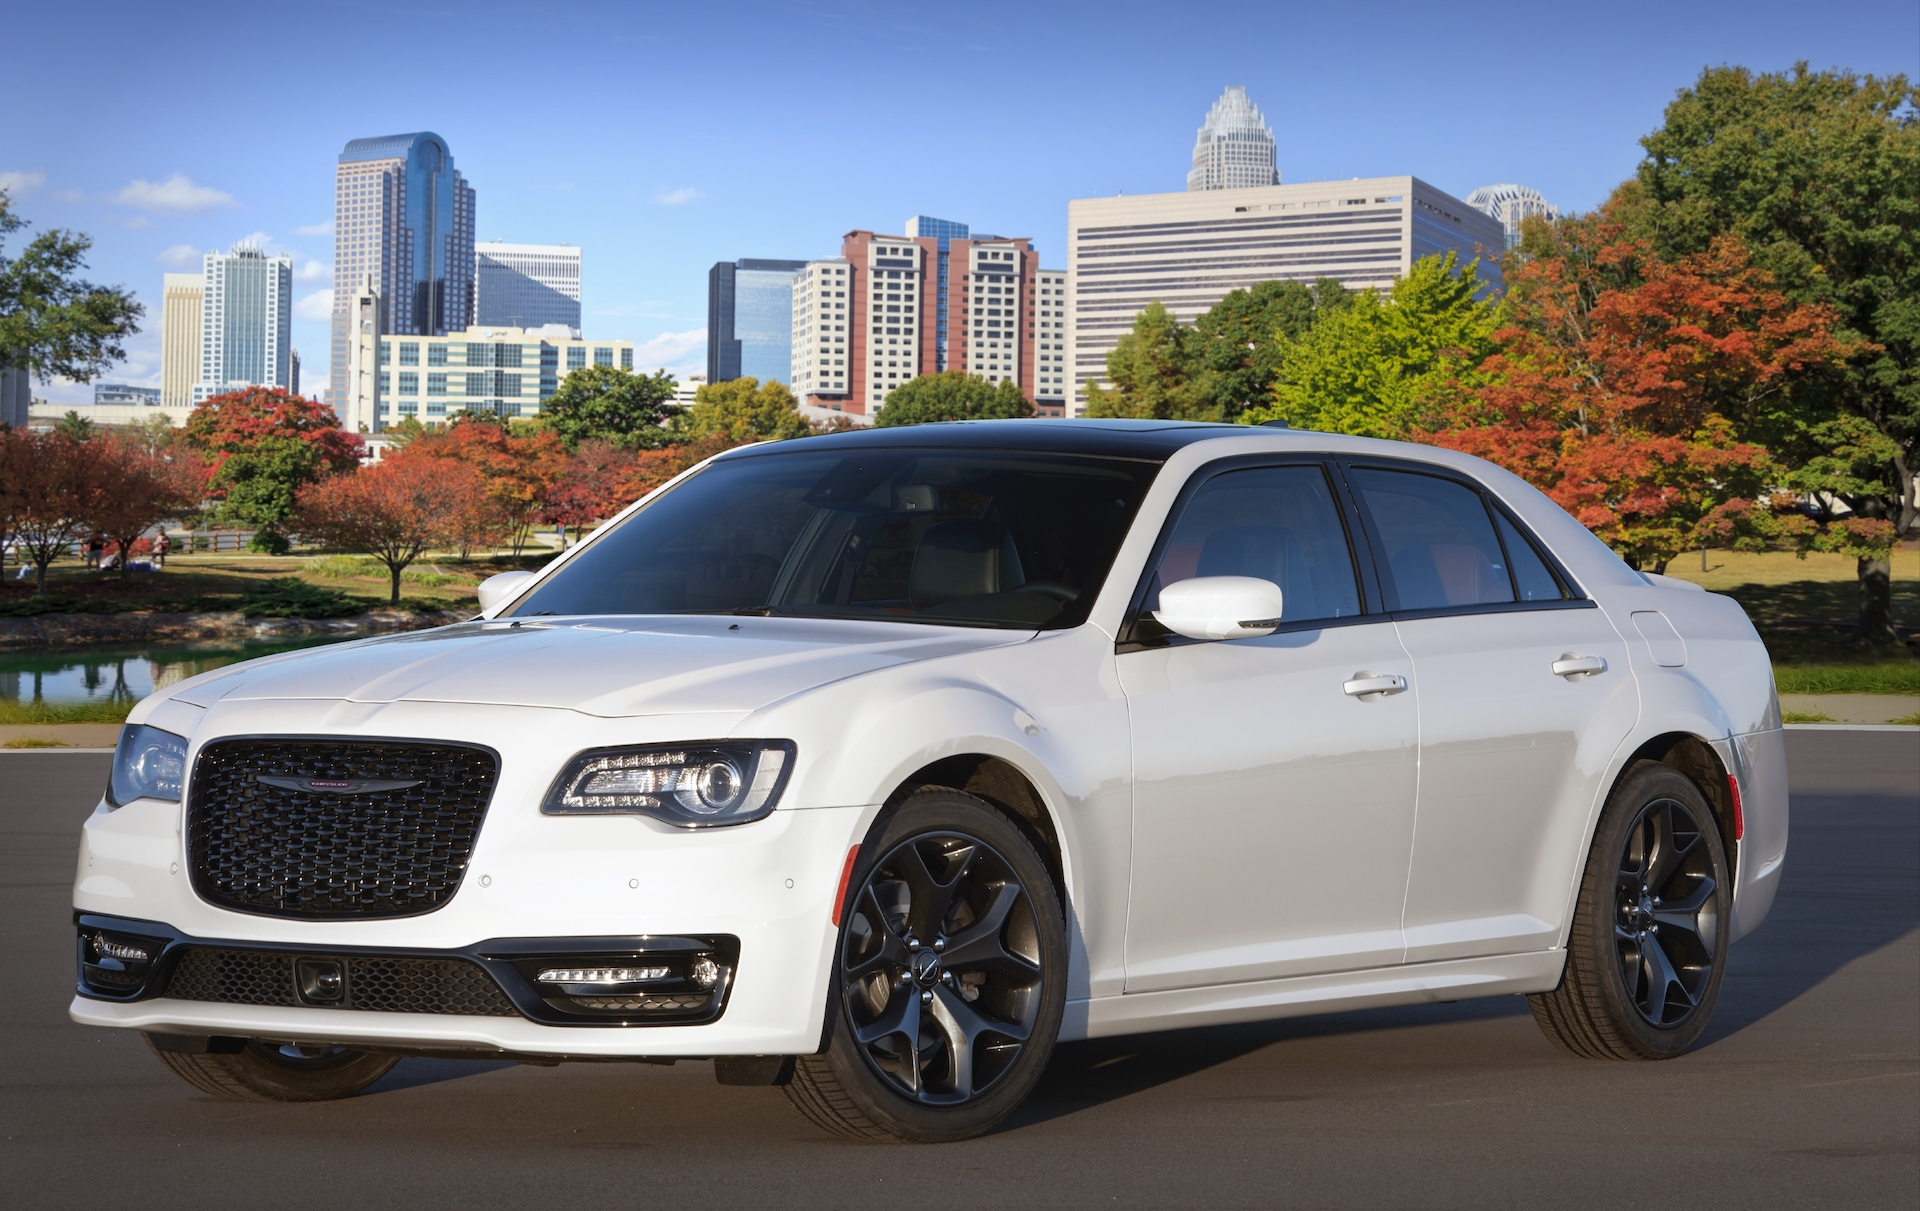 2020 Chrysler 300 Review, Ratings, Specs, Prices, and Photos - The Car  Connection